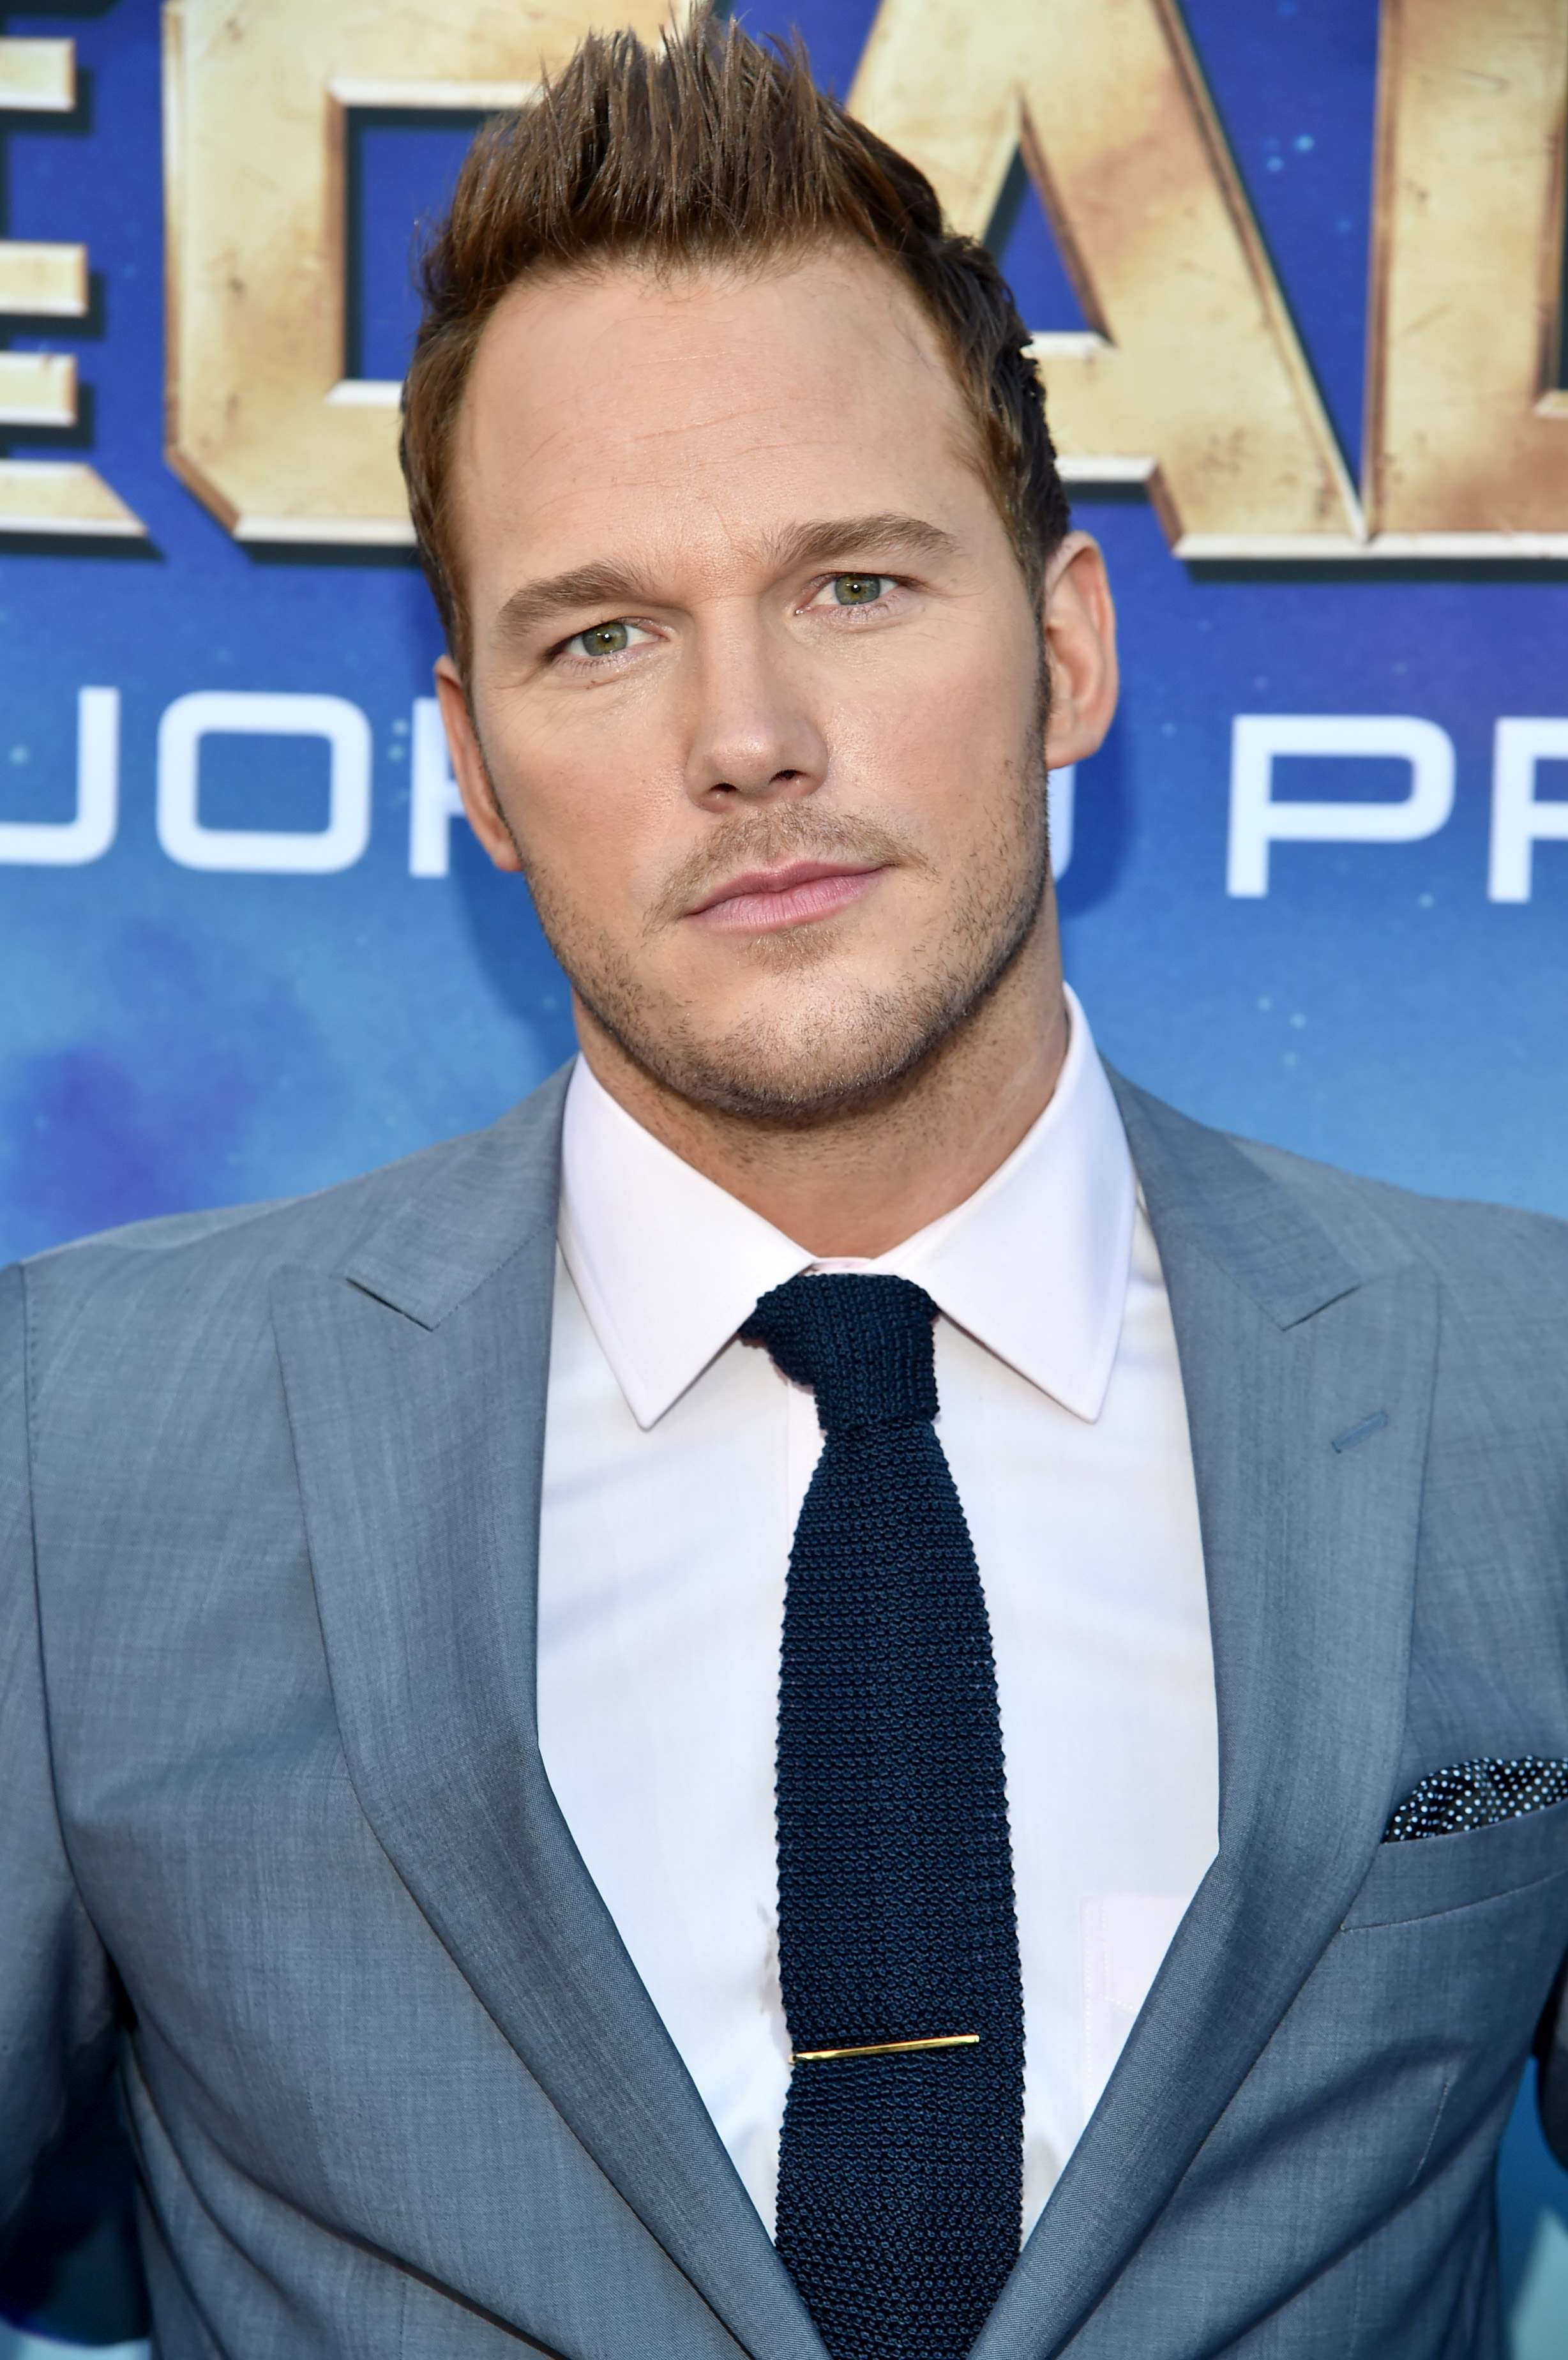 Chris-Pratt-at-Guardians-of-the-Galaxy-premiere-www.scifiempire.net